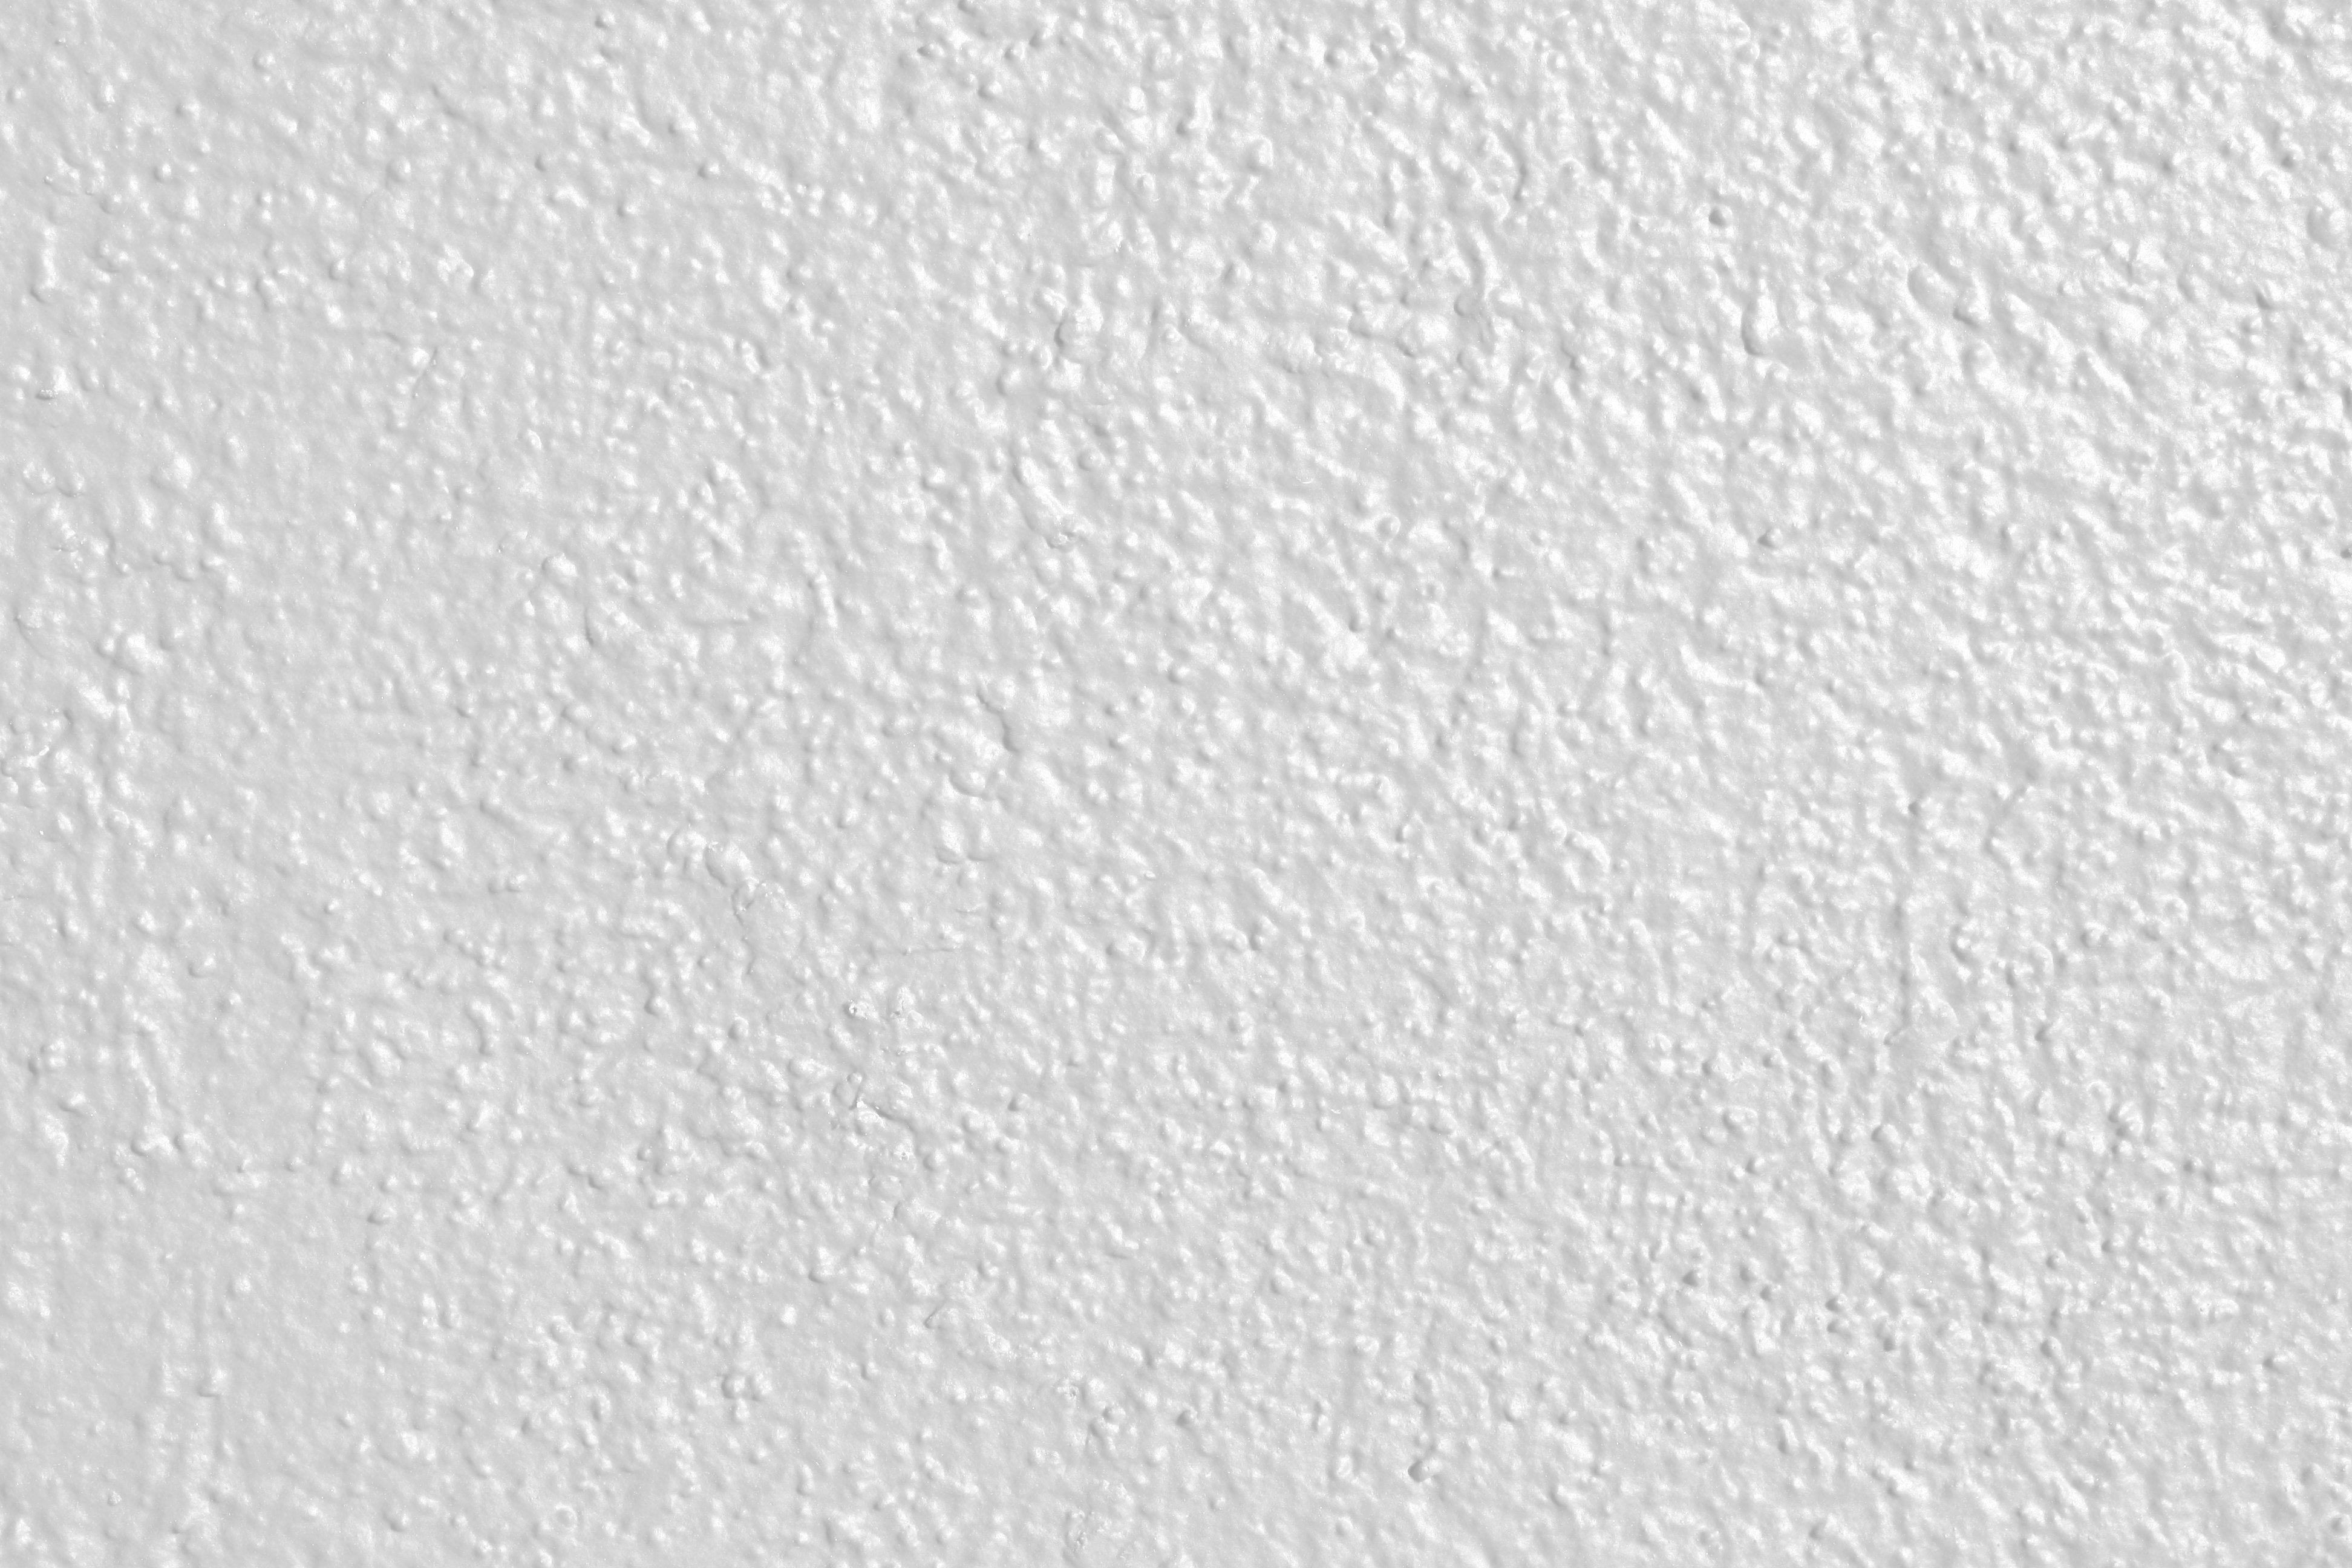 White Painted Wall Texture Picture